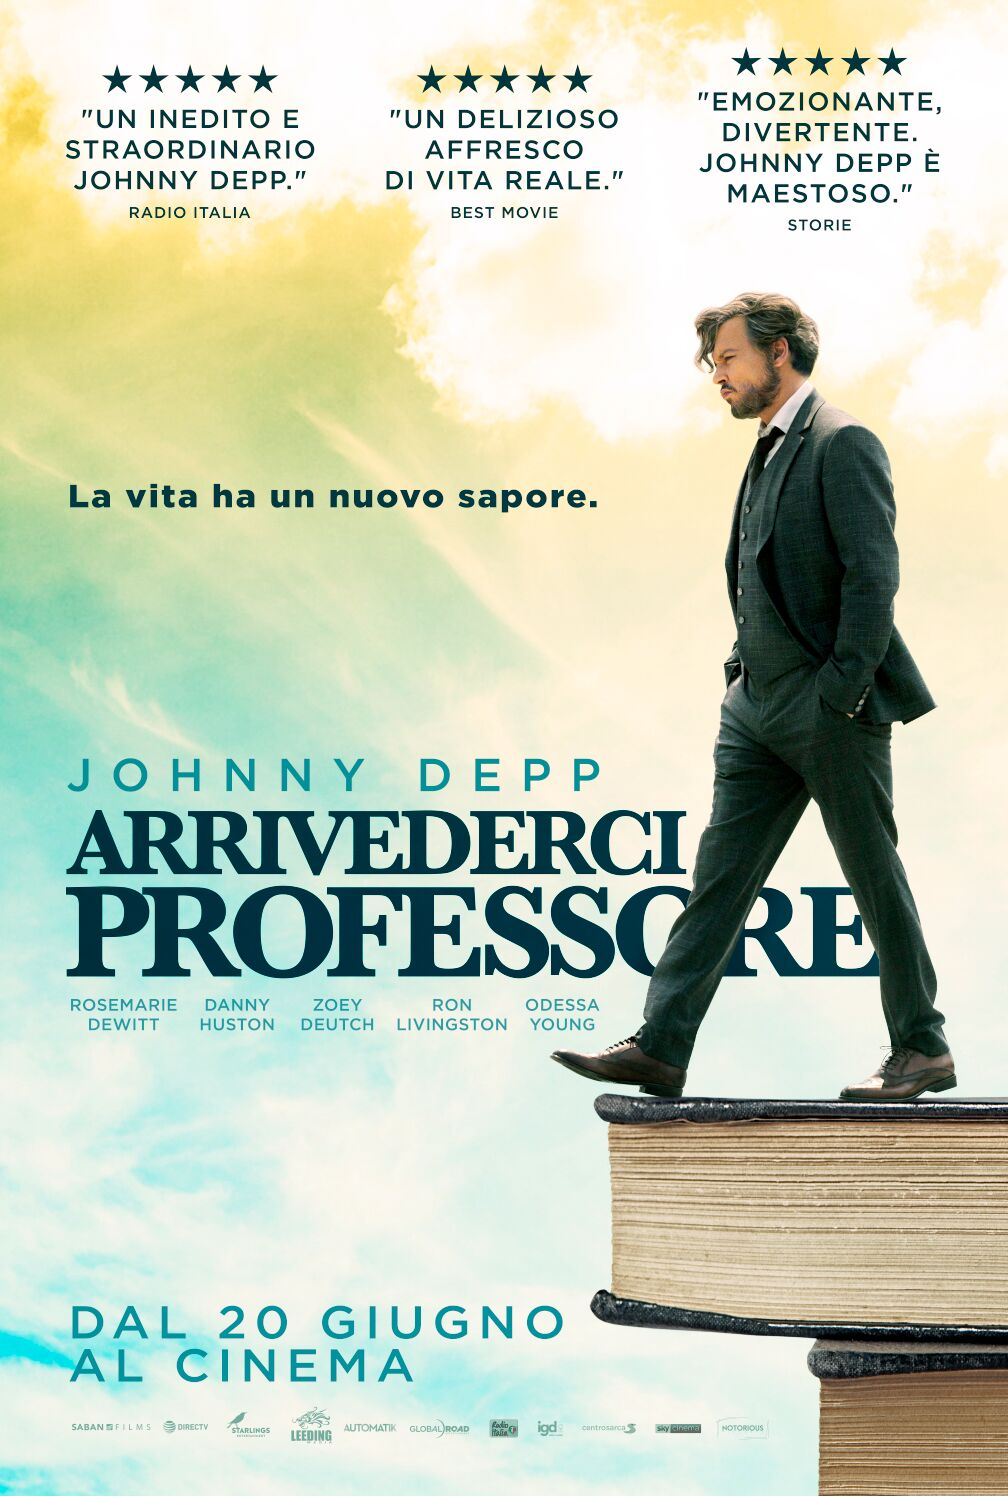 Arrivederci professore, Johnny Depp di nuovo al cinema 3